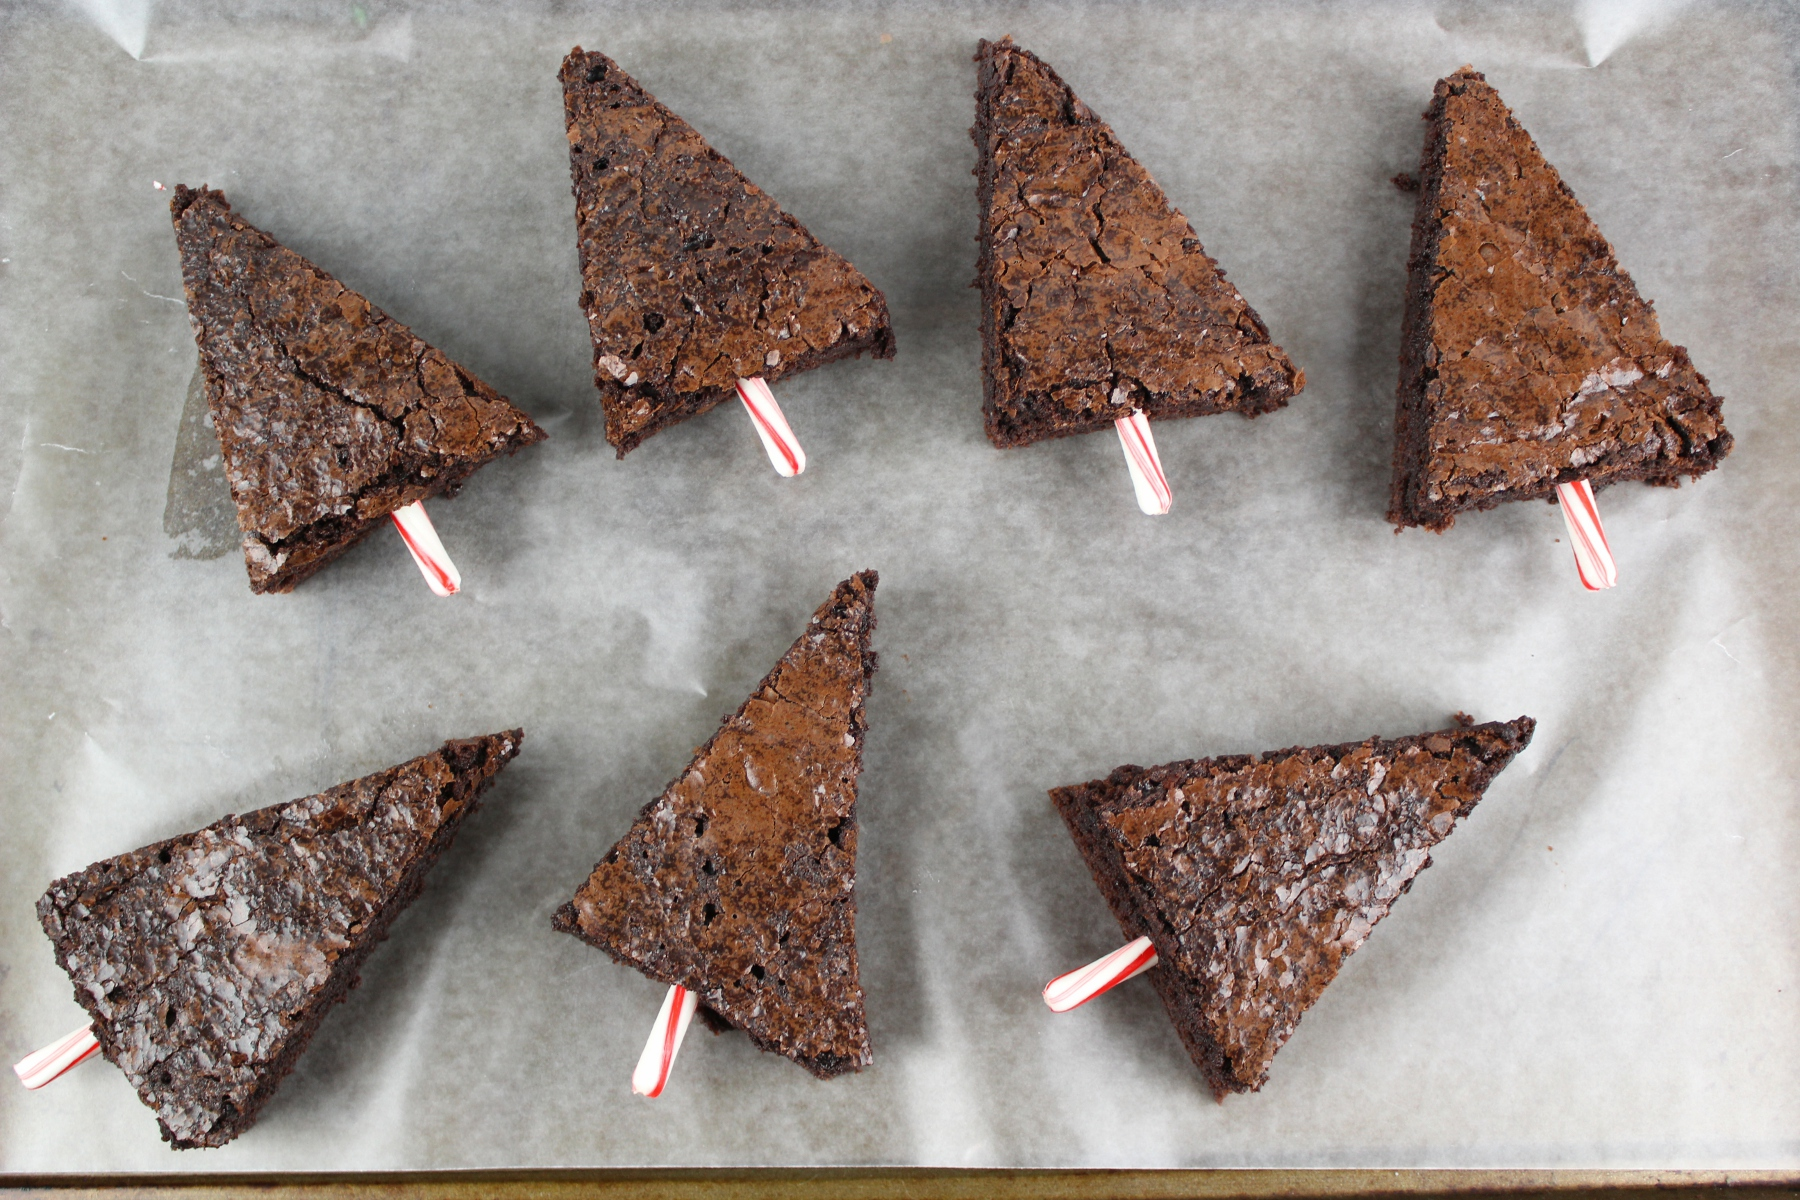 If you want to make a fun and festive Christmas treat this year, check out these Christmas Tree Brownies. They are easy to make & come out so cute!